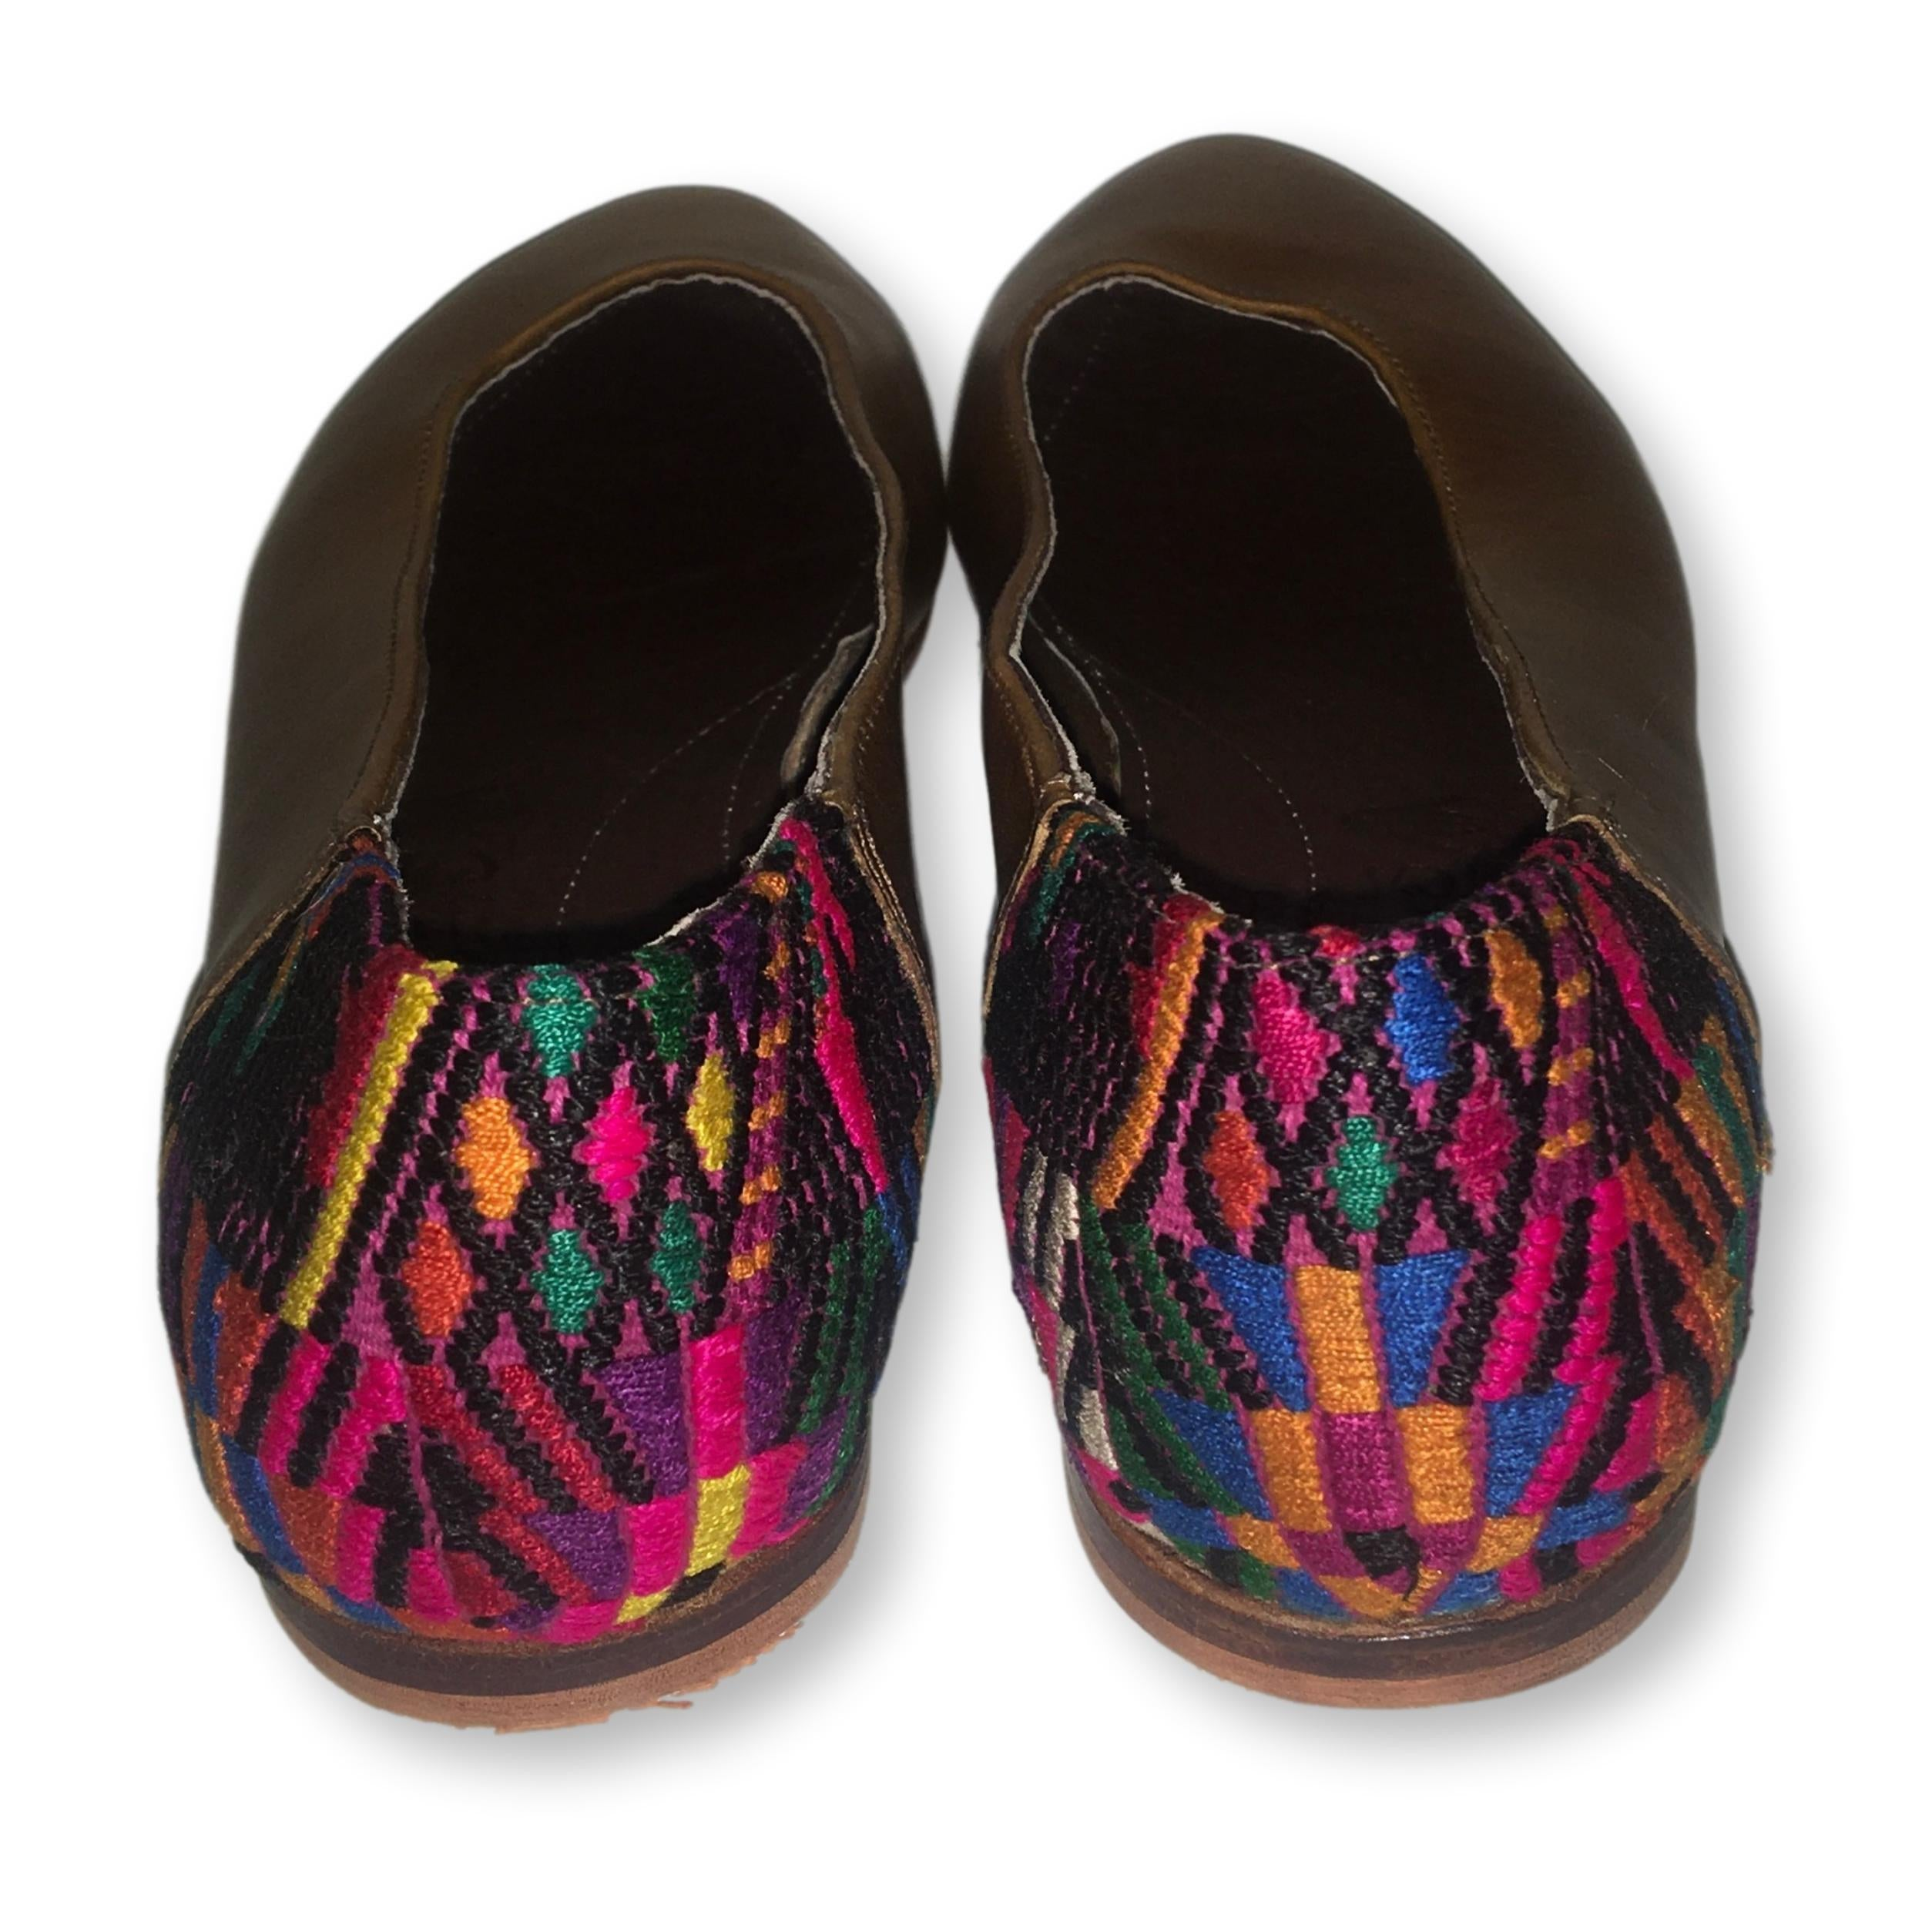 Guatemalan Handcrafted Flats Best Fit 8.5-9